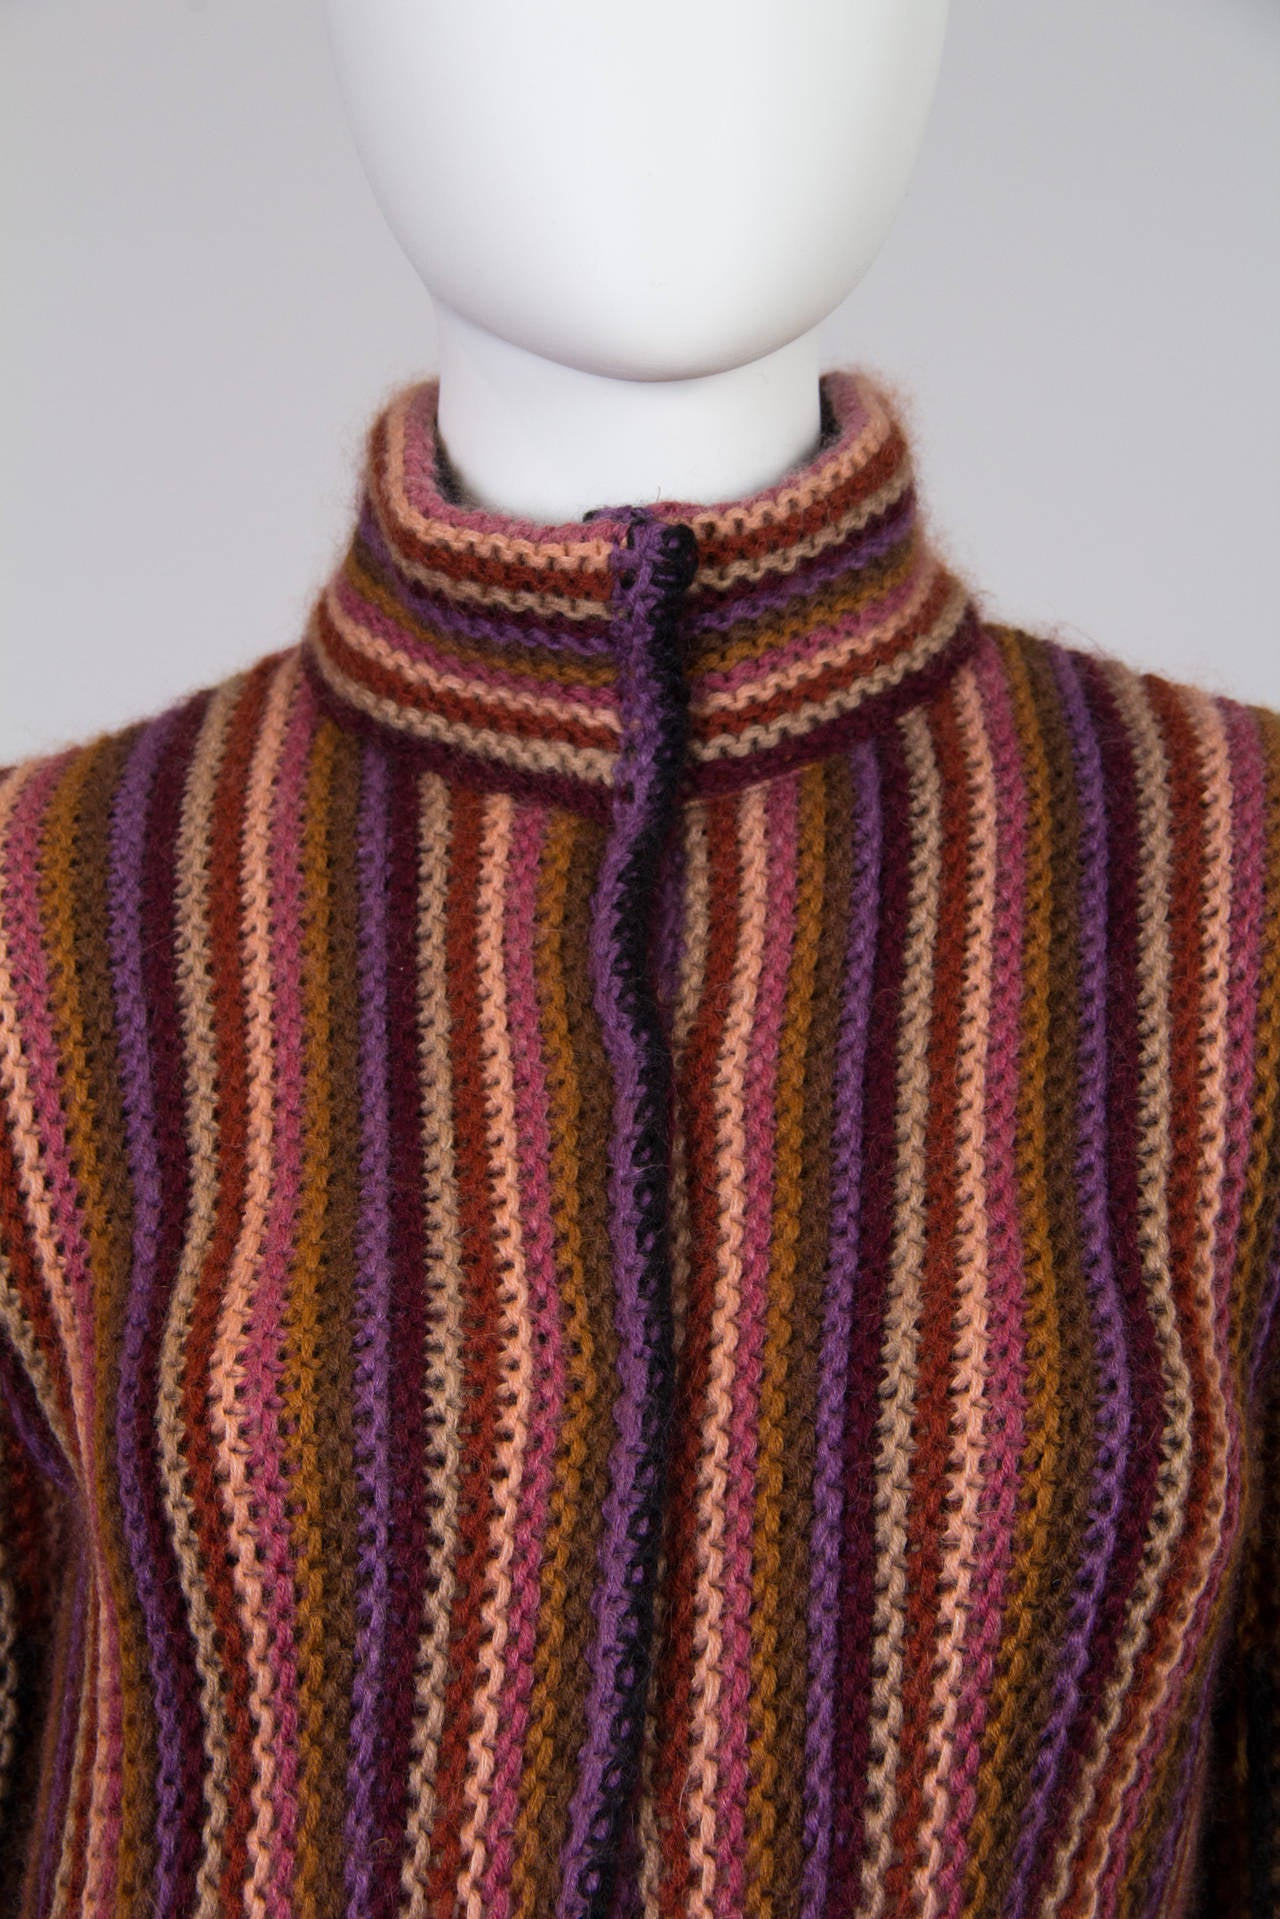 Blanket soft Missoni Mohair and Wool Knit Coat. 6